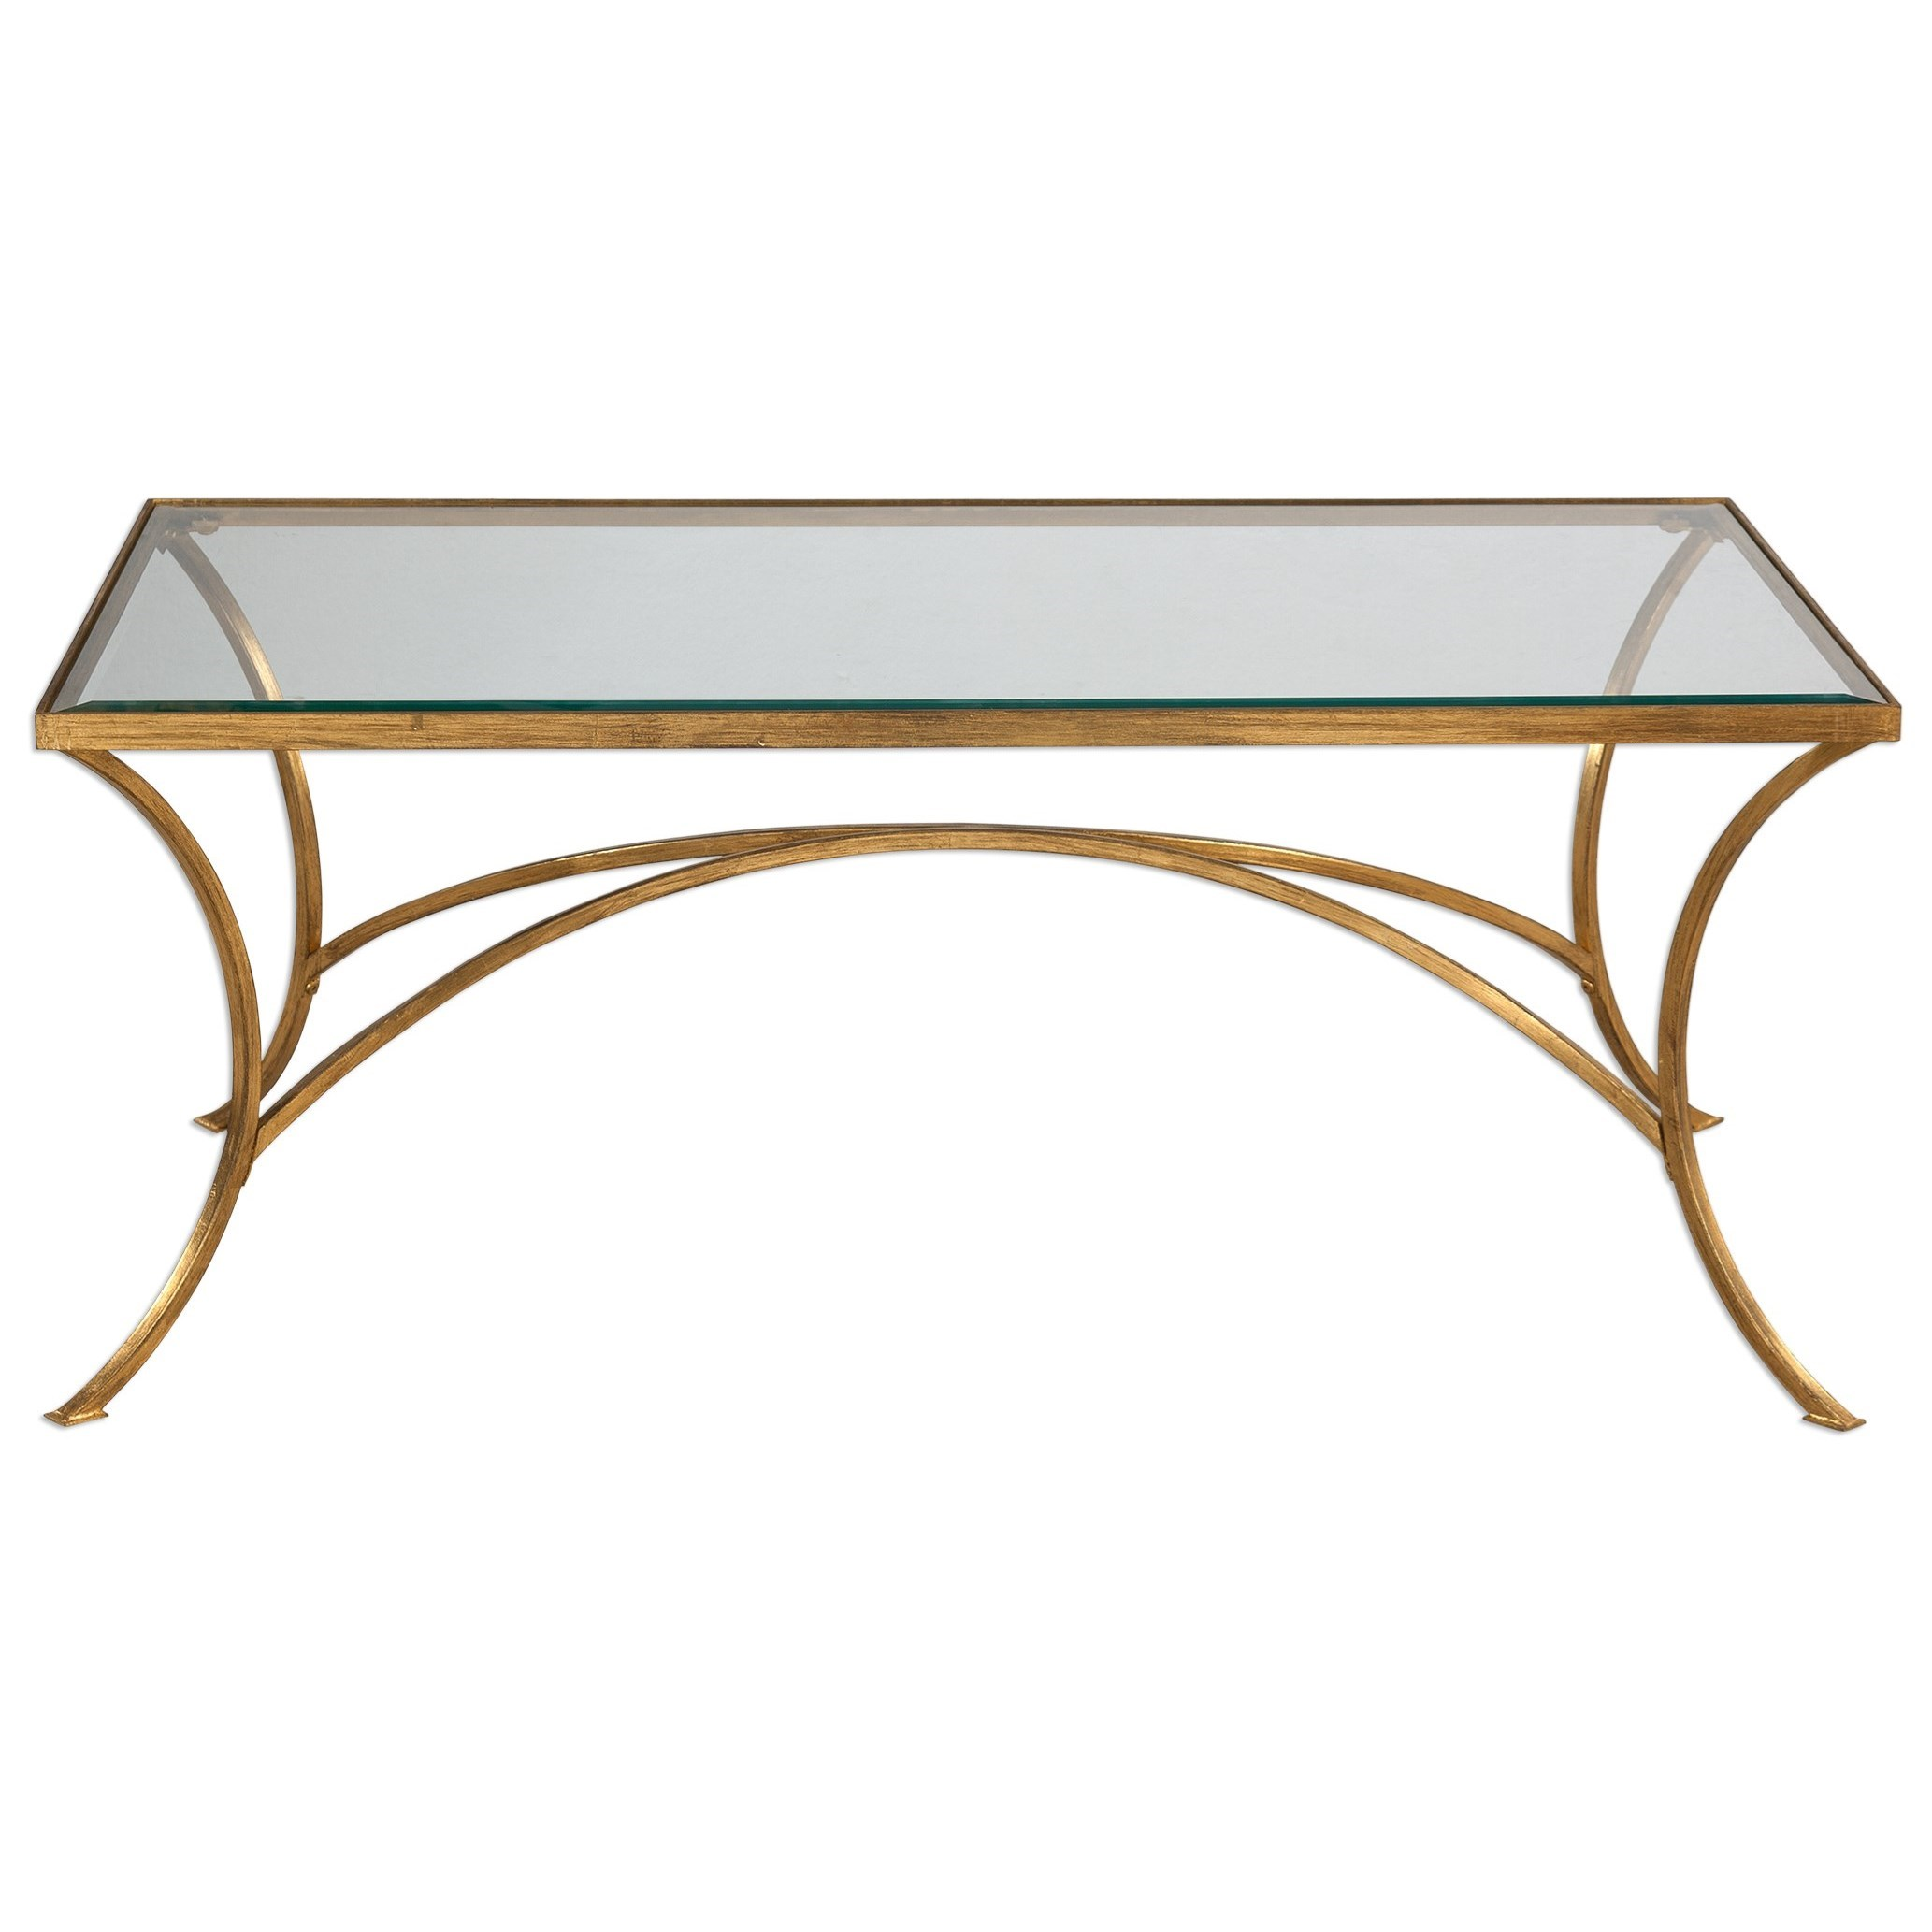 Accent Furniture - Occasional Tables Alayna Gold Coffee Table by Uttermost at Upper Room Home Furnishings